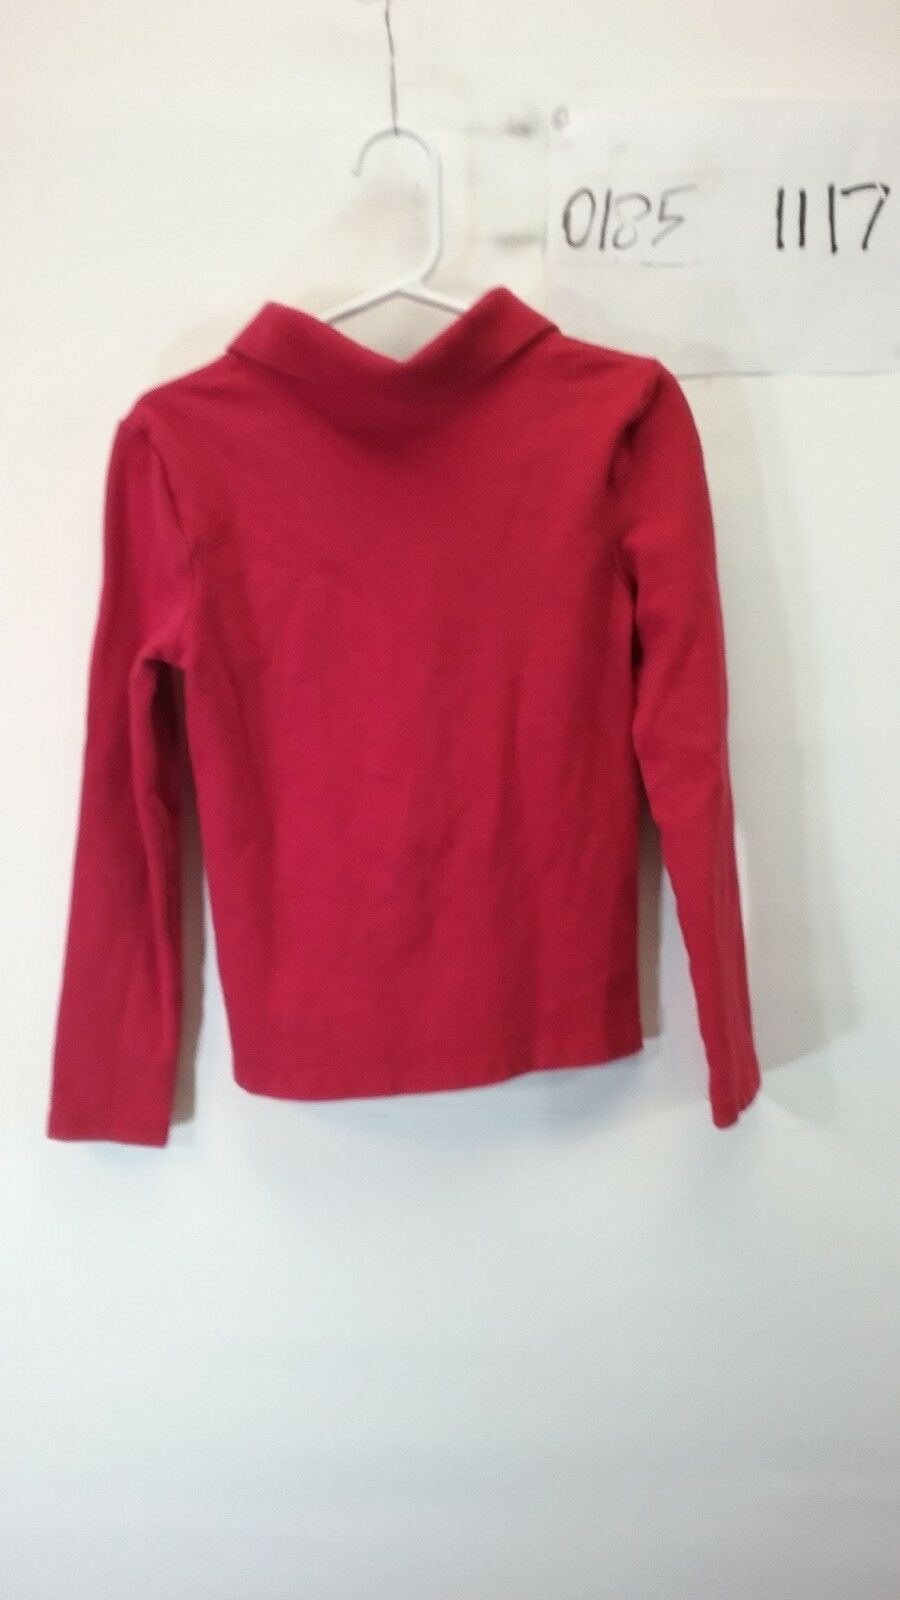 Gap Kids Boy's Red Long Sleeve Polo Shirt Size Small image 2